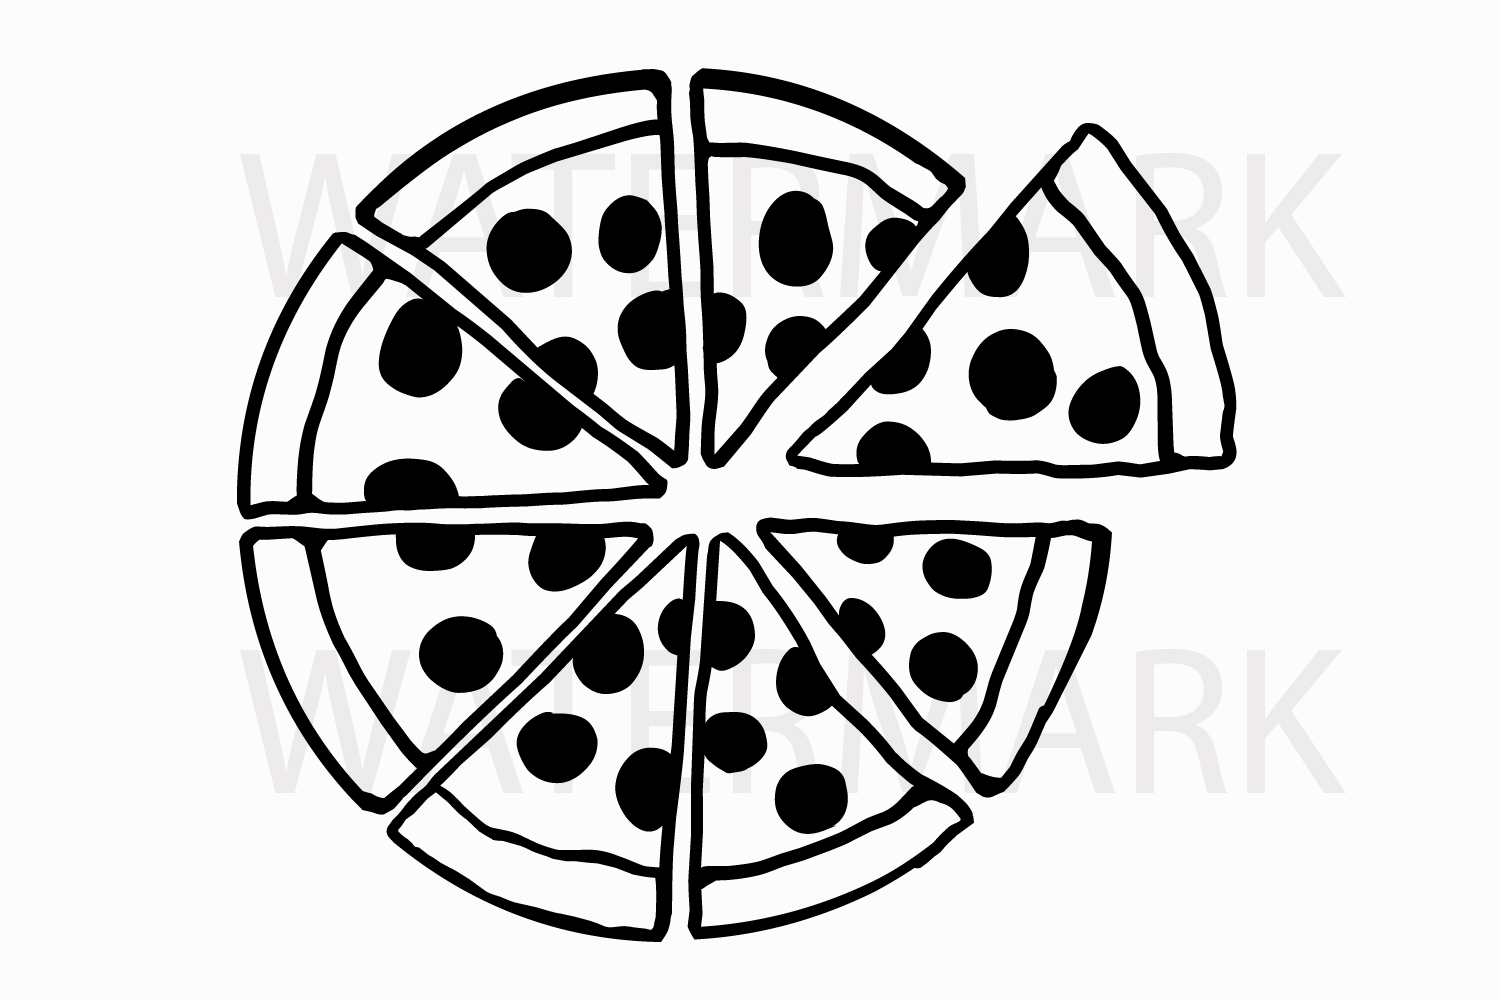 Pizza pieces - SVG/JPG/PNG Hand Drawing example image 1